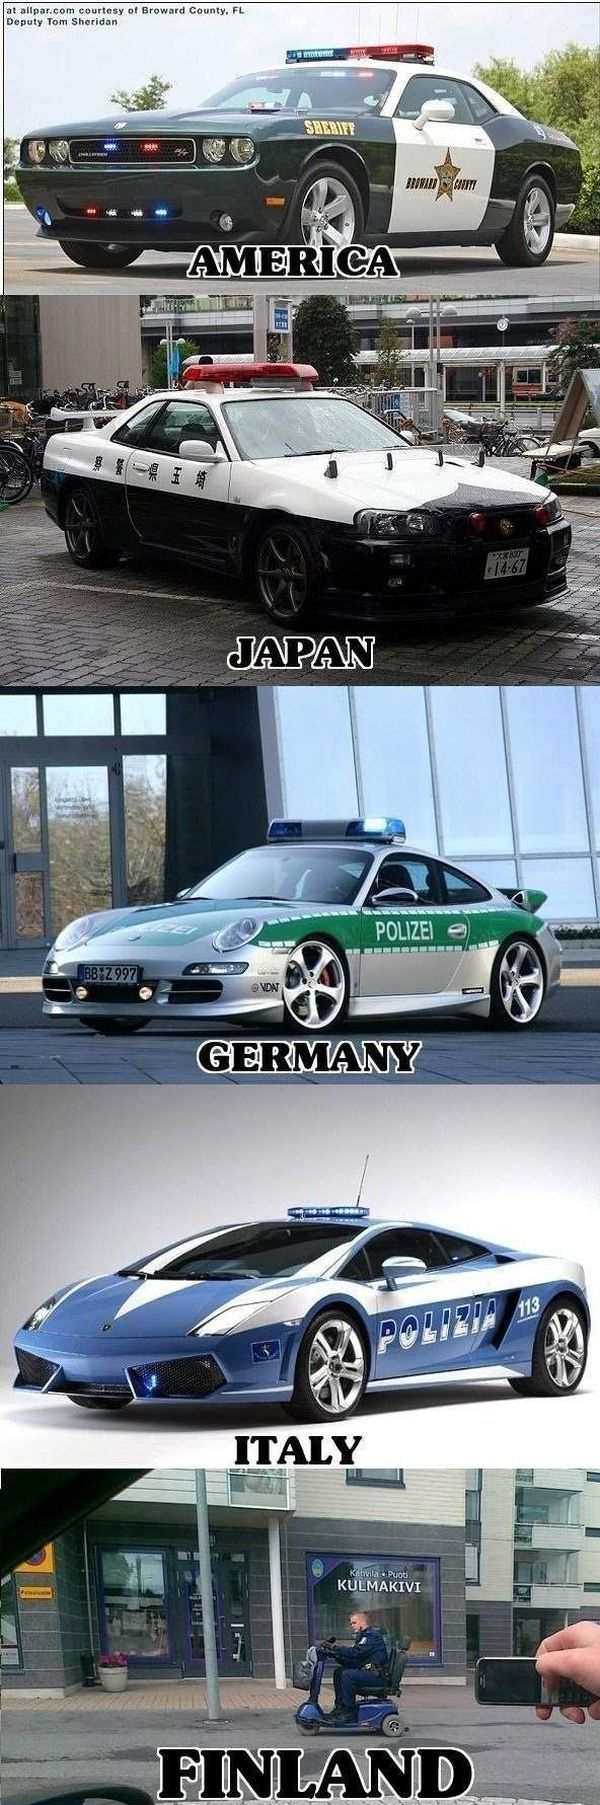 Police-Cars-In-Different-Countries